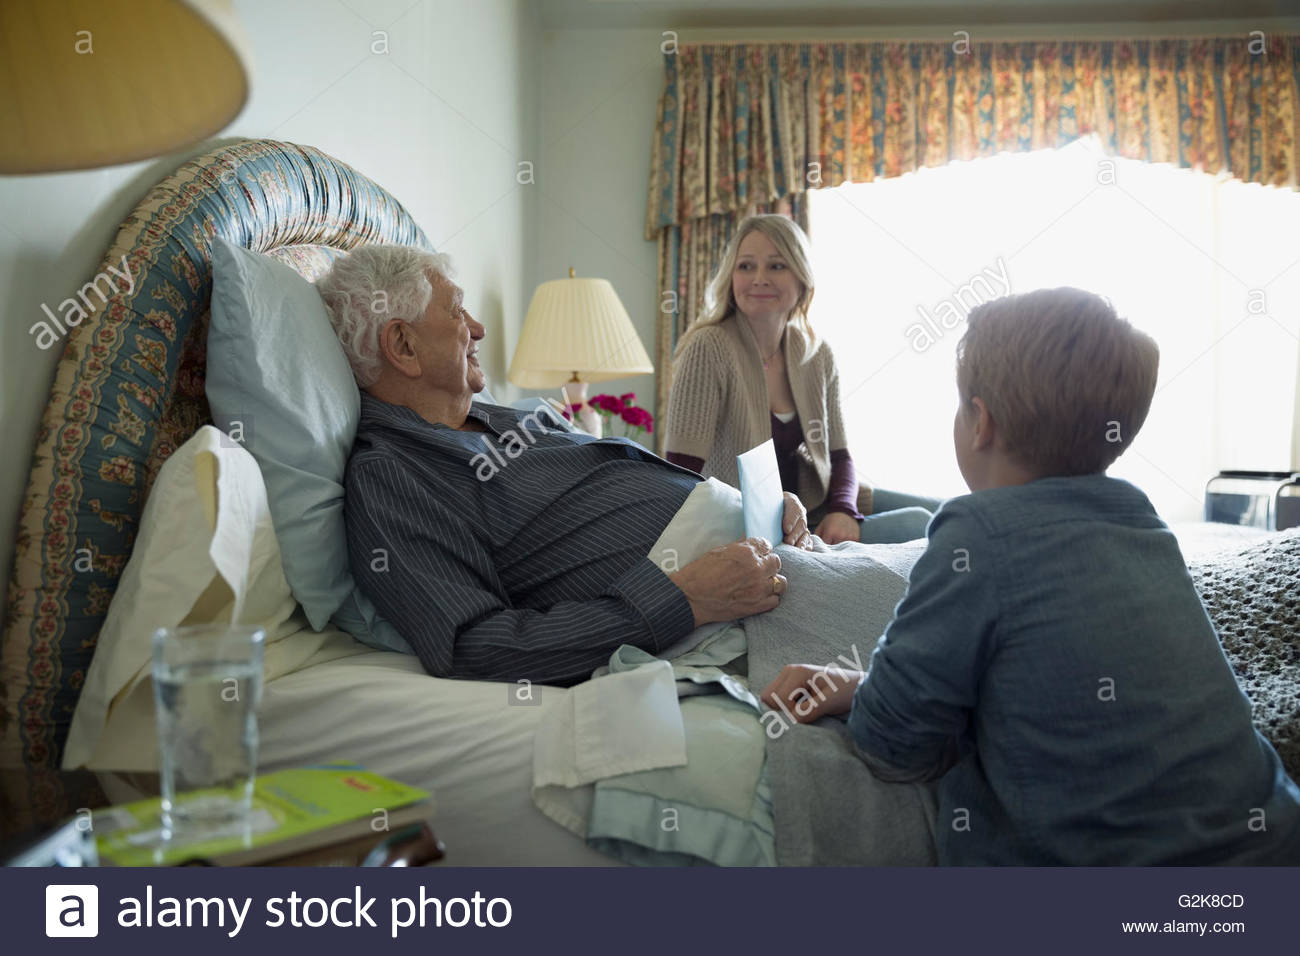 Daughter and grandson visiting grandfather resting in bed - Stock Image